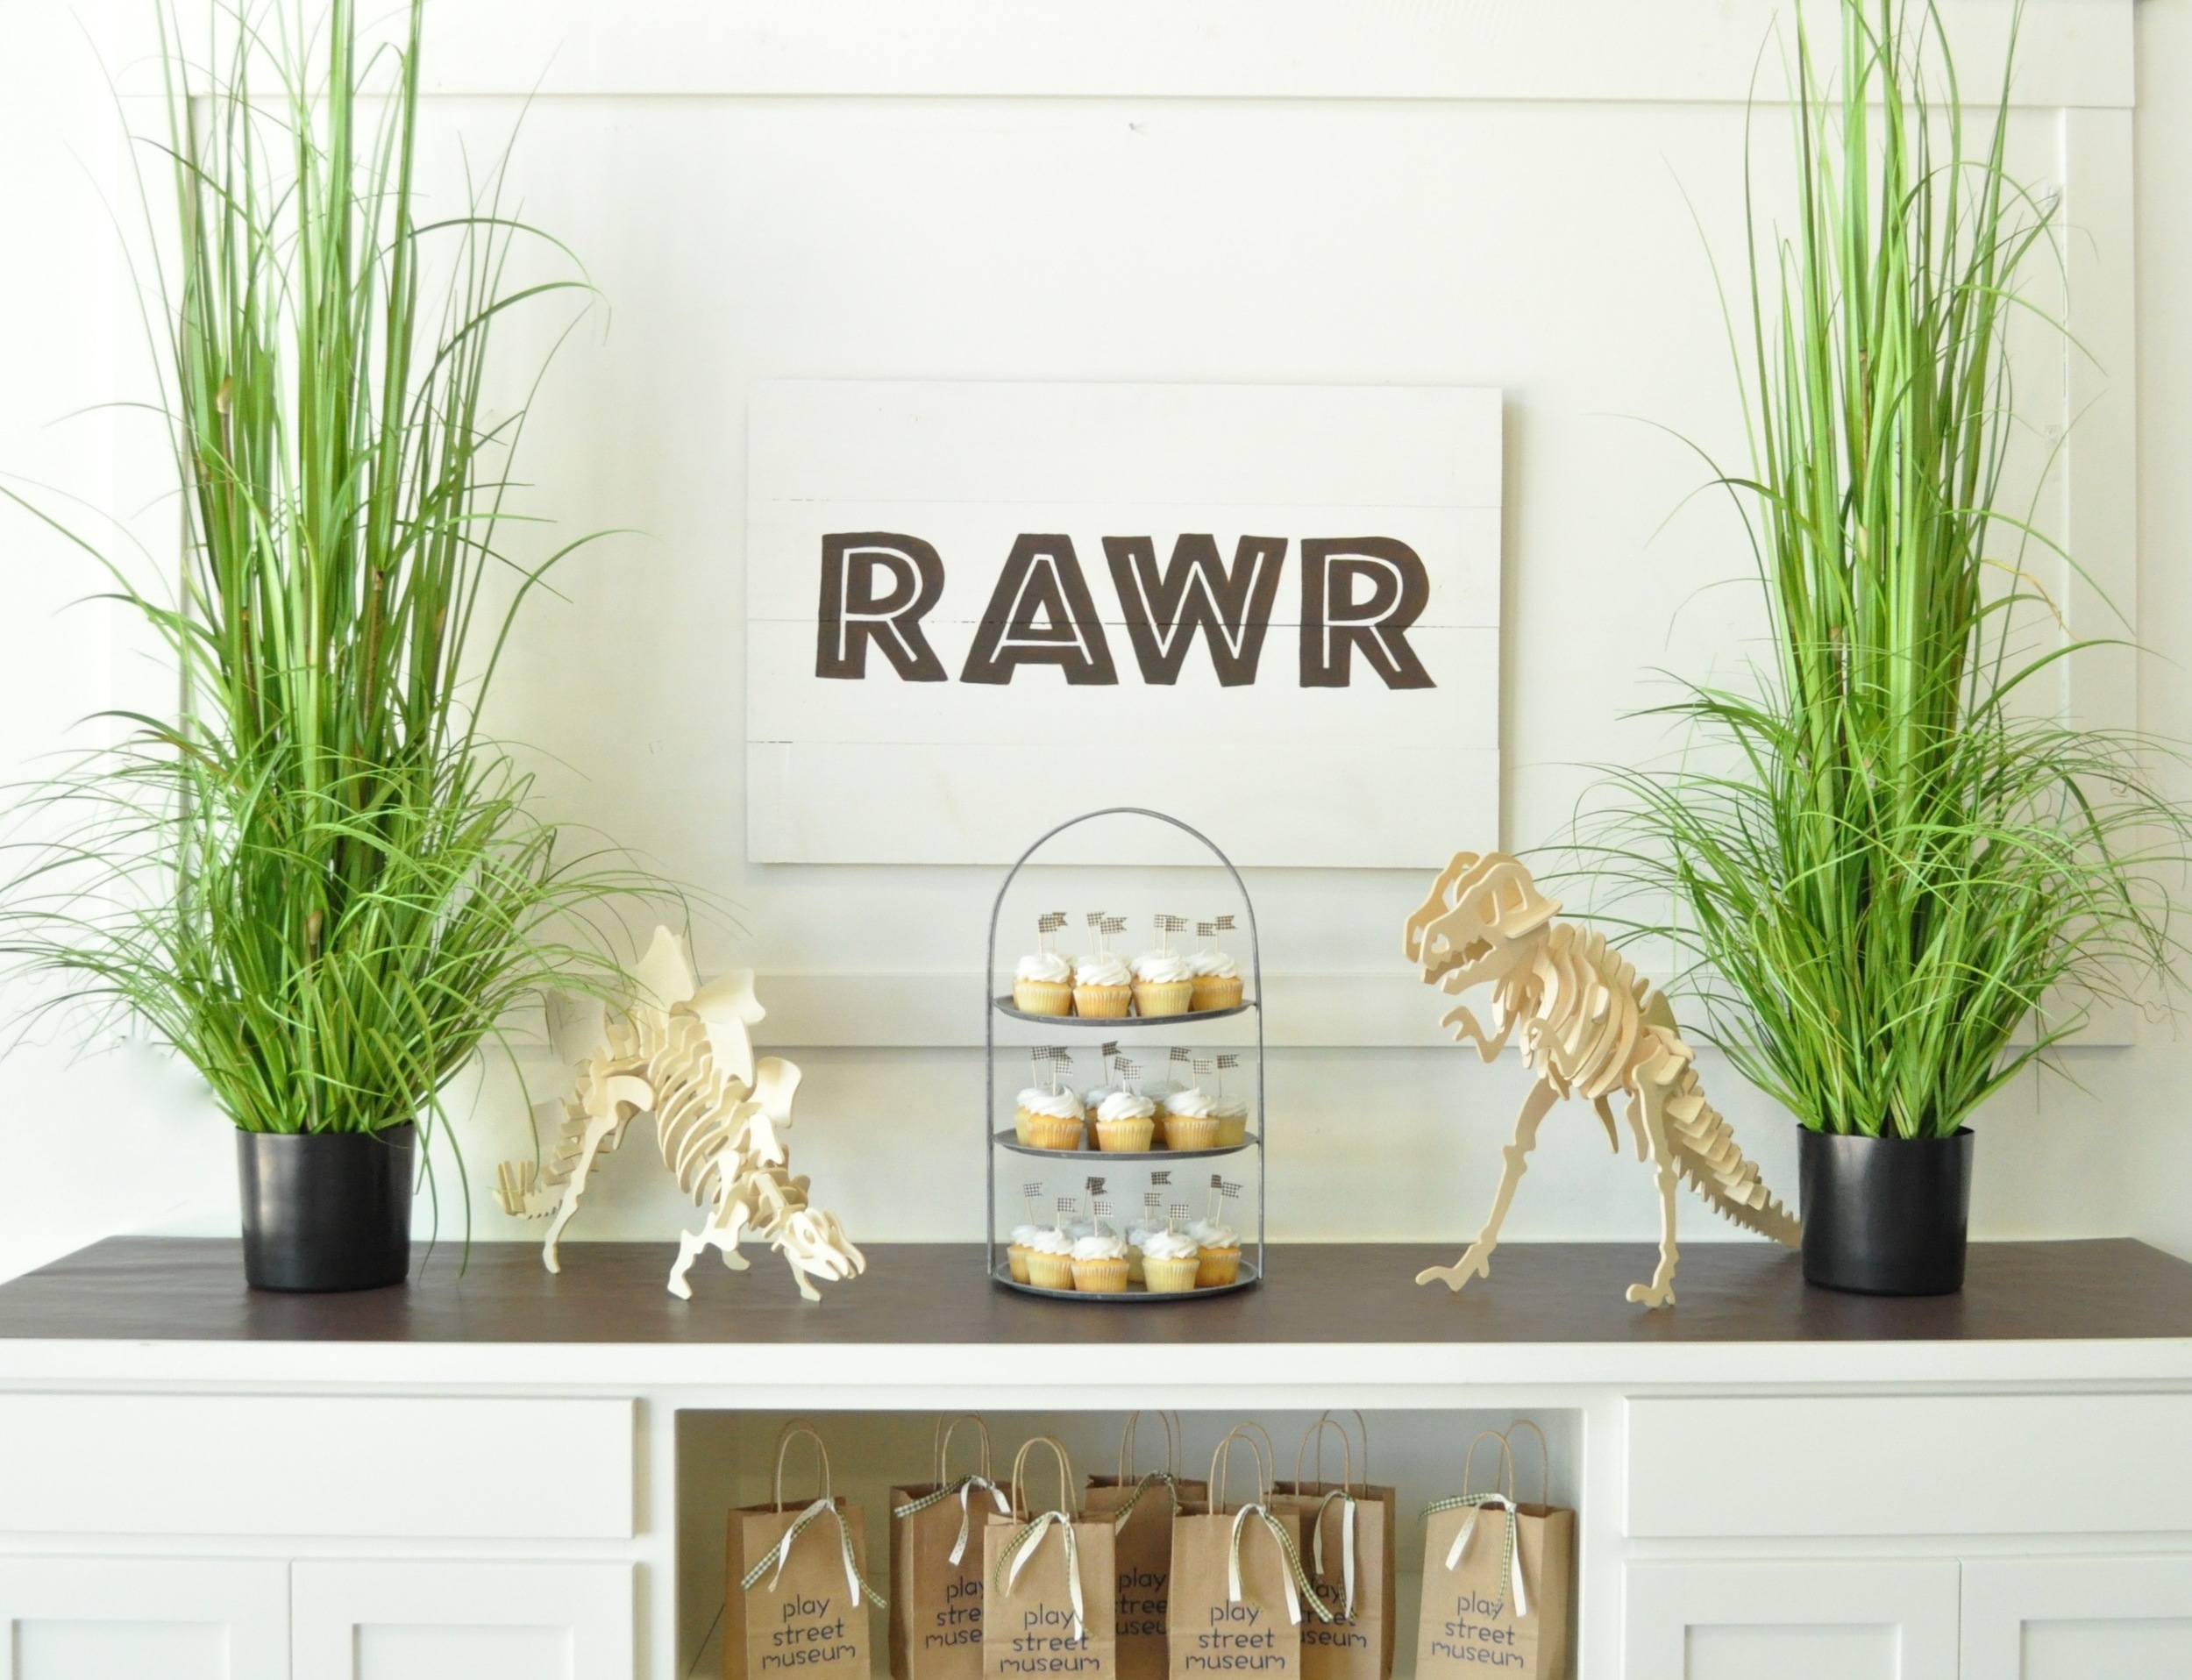 There is something about the simplicity of this theme that I really like. Maybe it is the symmetry, maybe its that it is so clean and uncluttered. Sometimes, whether it is planning a party, decorating a play room, or just life in general...Less is More!